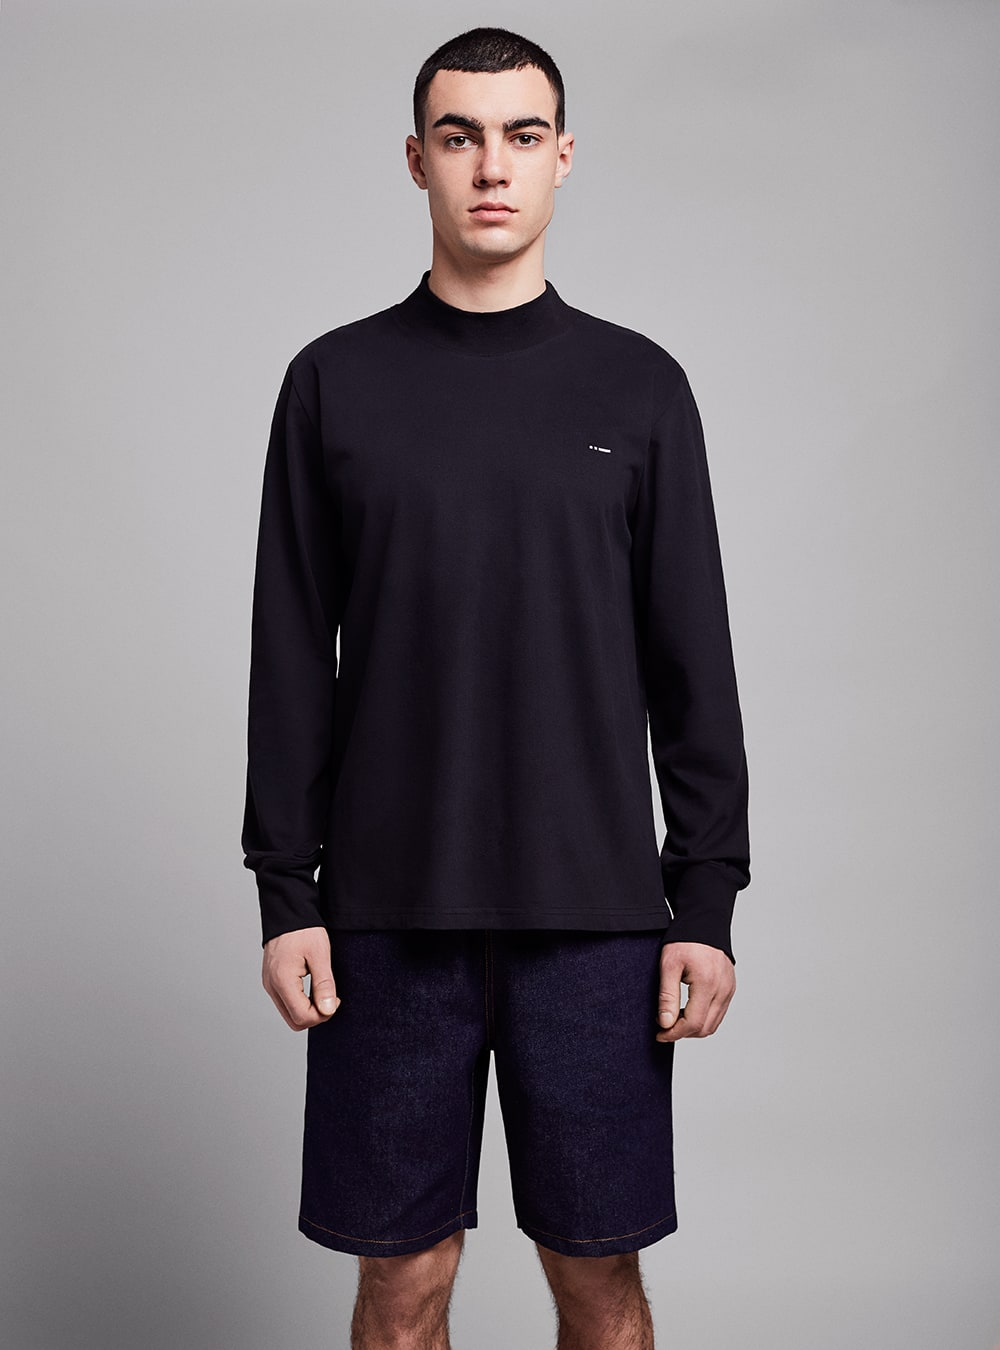 Mock neck long sleeve (black) in organic cotton, made in Portugal by wetheknot.